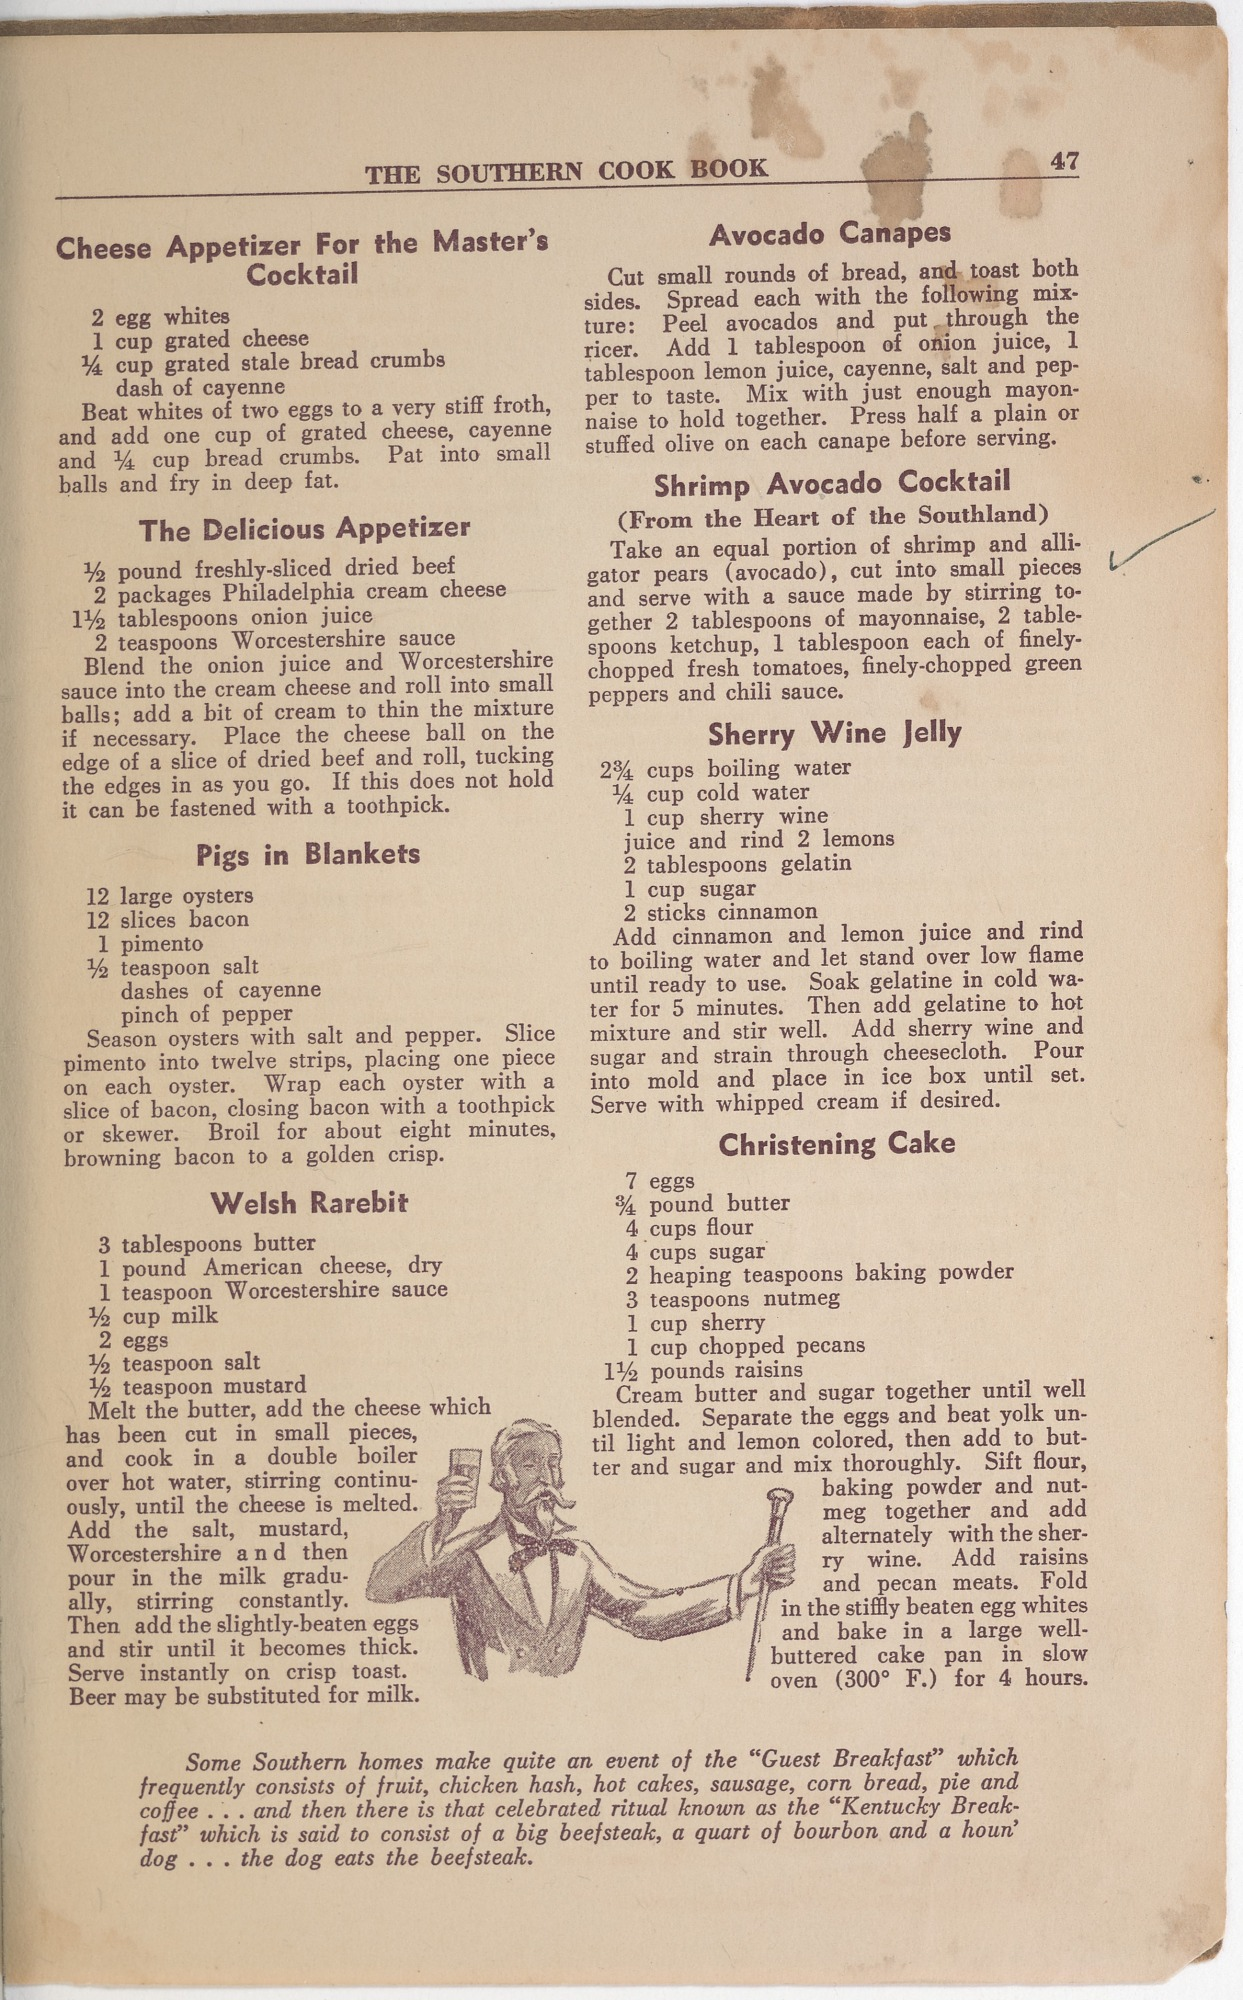 View <I>Southern Cook Book of Fine Old Dixie Recipes</I> digital asset number 49